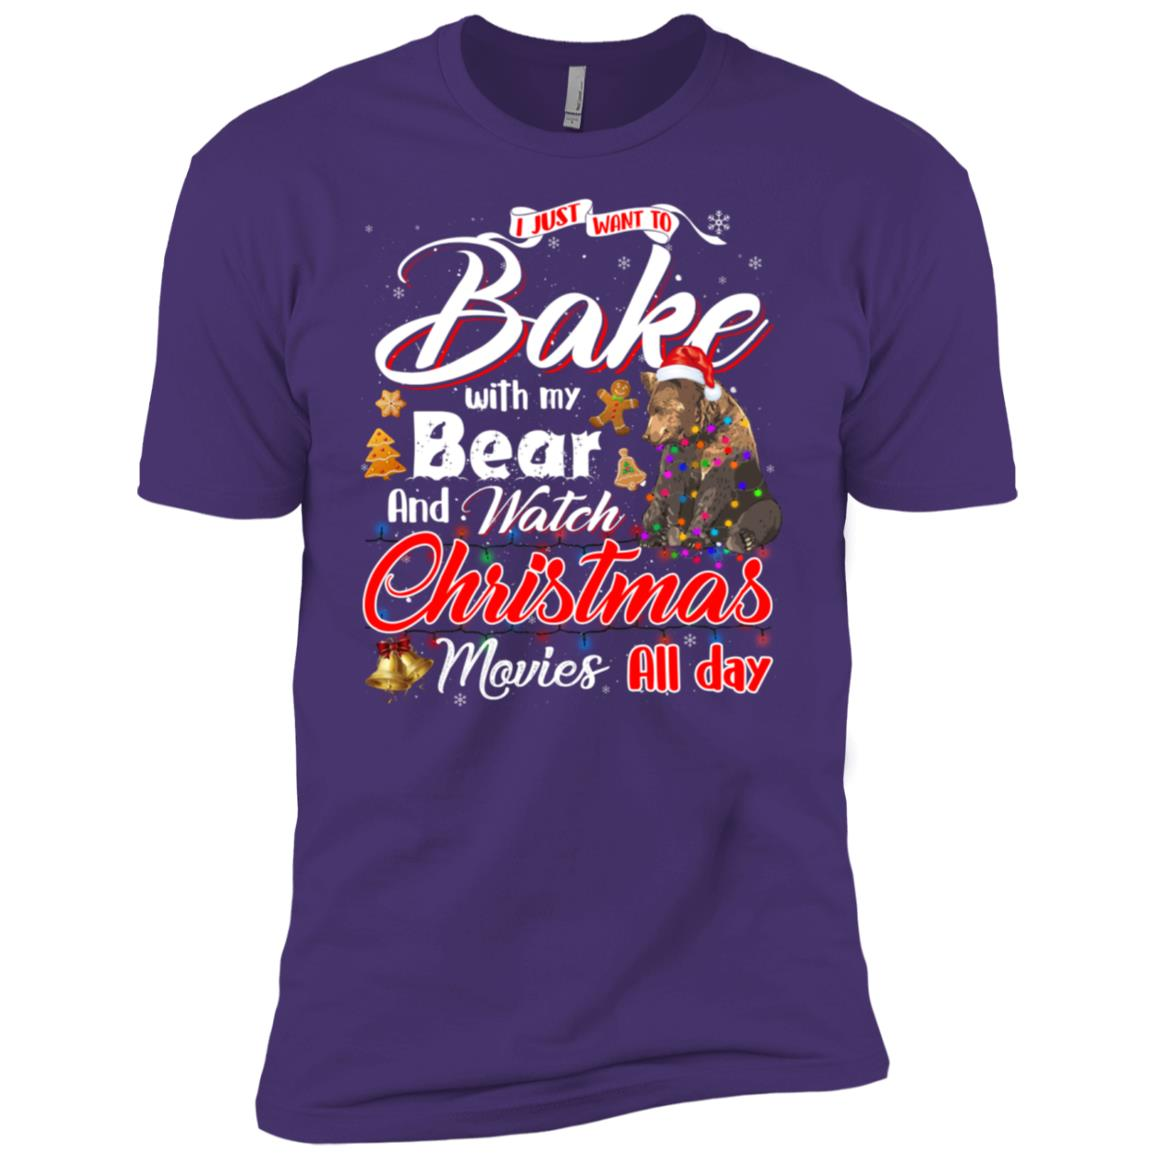 Bake Stuff with Bear And Watch Christmas Movies Men Short Sleeve T-Shirt